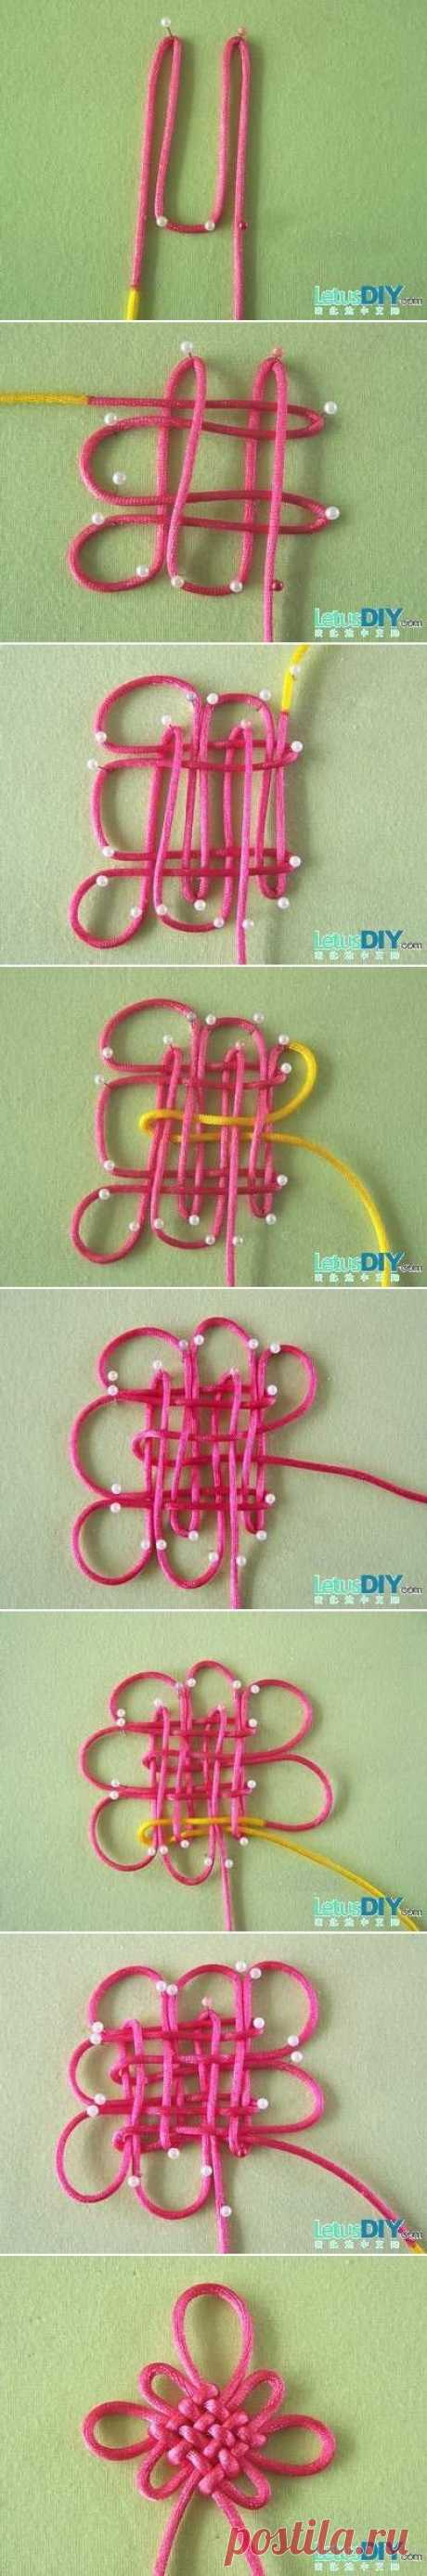 DIY Chinese New year ornament with great Chinese knot …